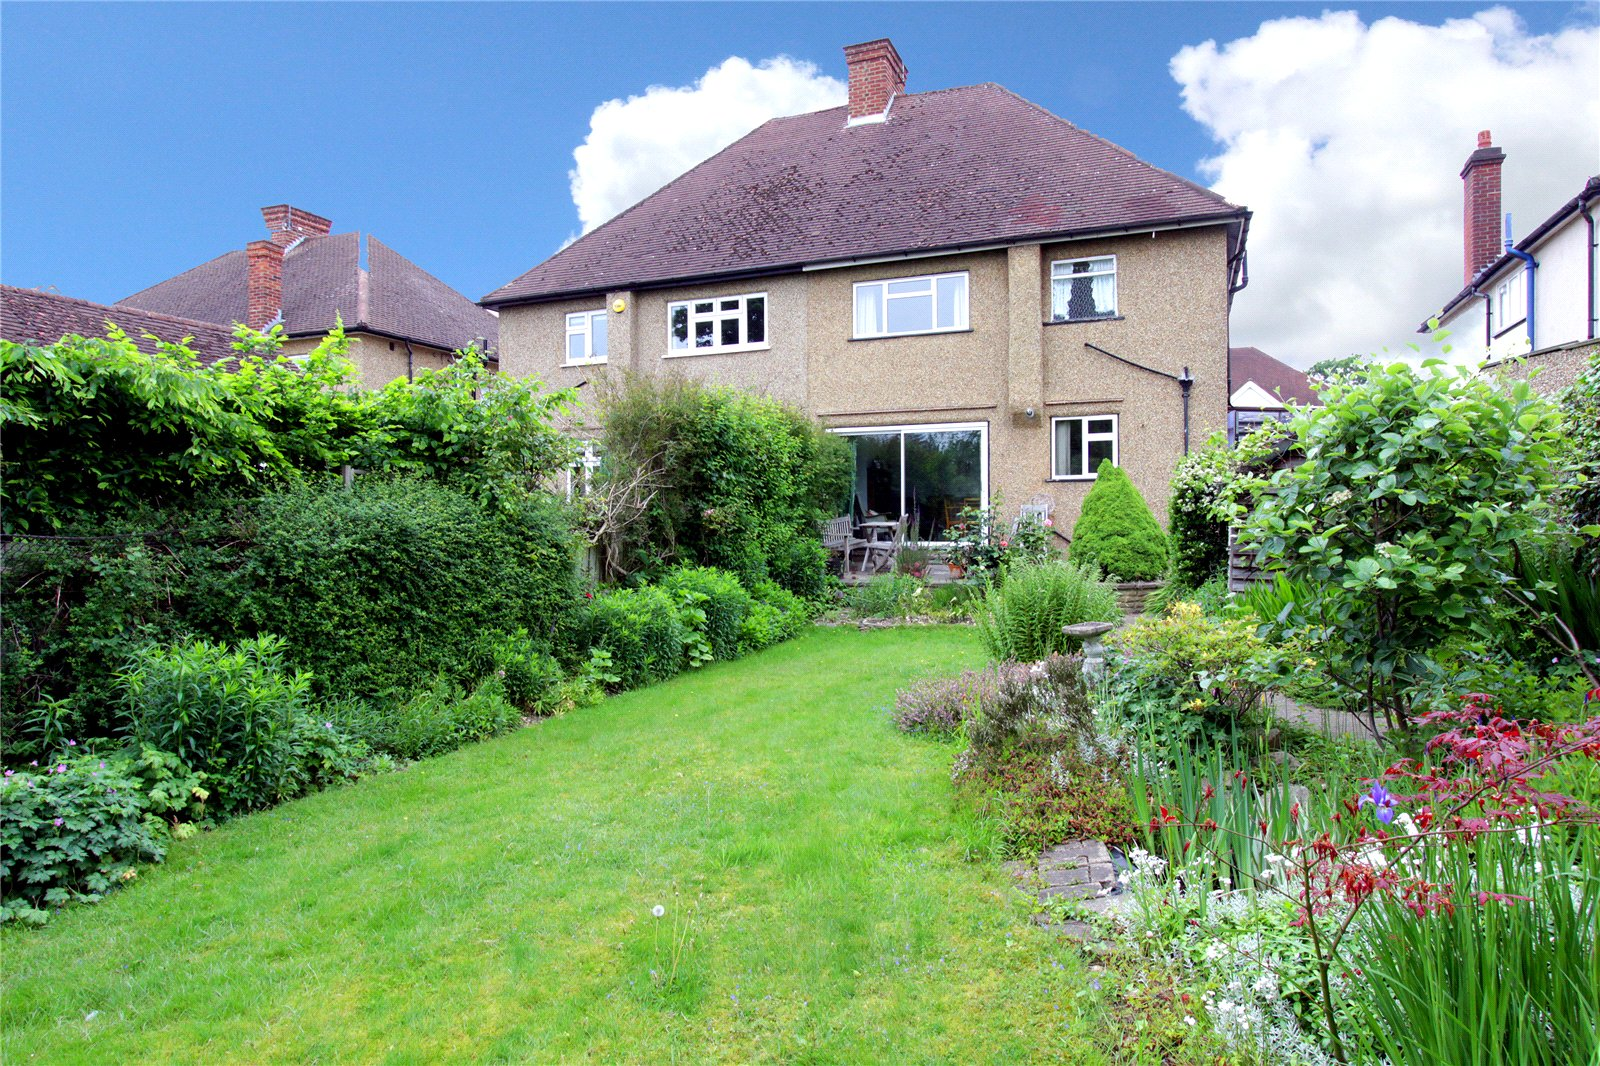 Property For Sale In Watford Herts